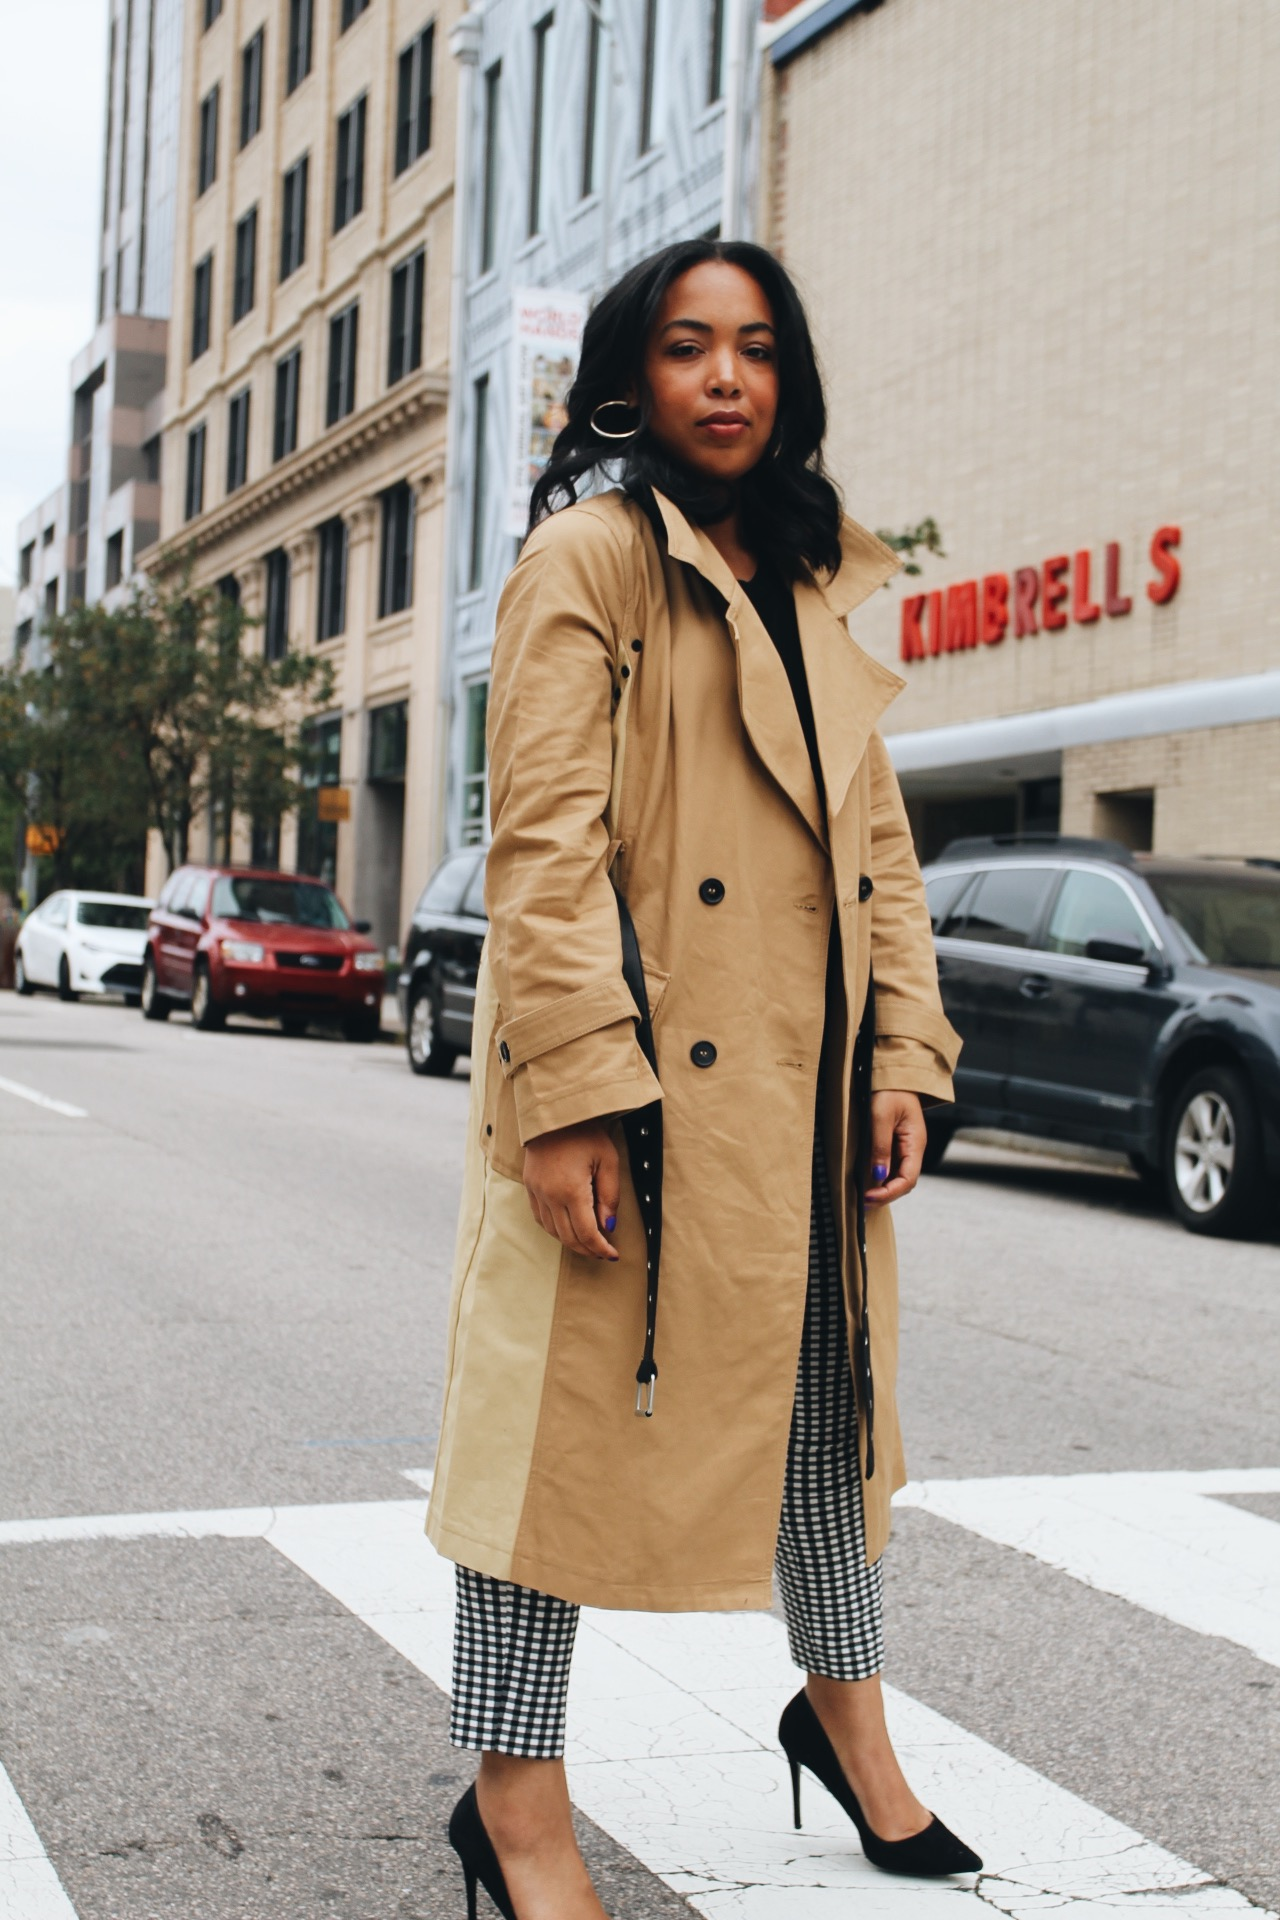 Walmart-fashion-avec-les-filles-lord-and-taylor-trench-gingham-fall-style-6.JPG